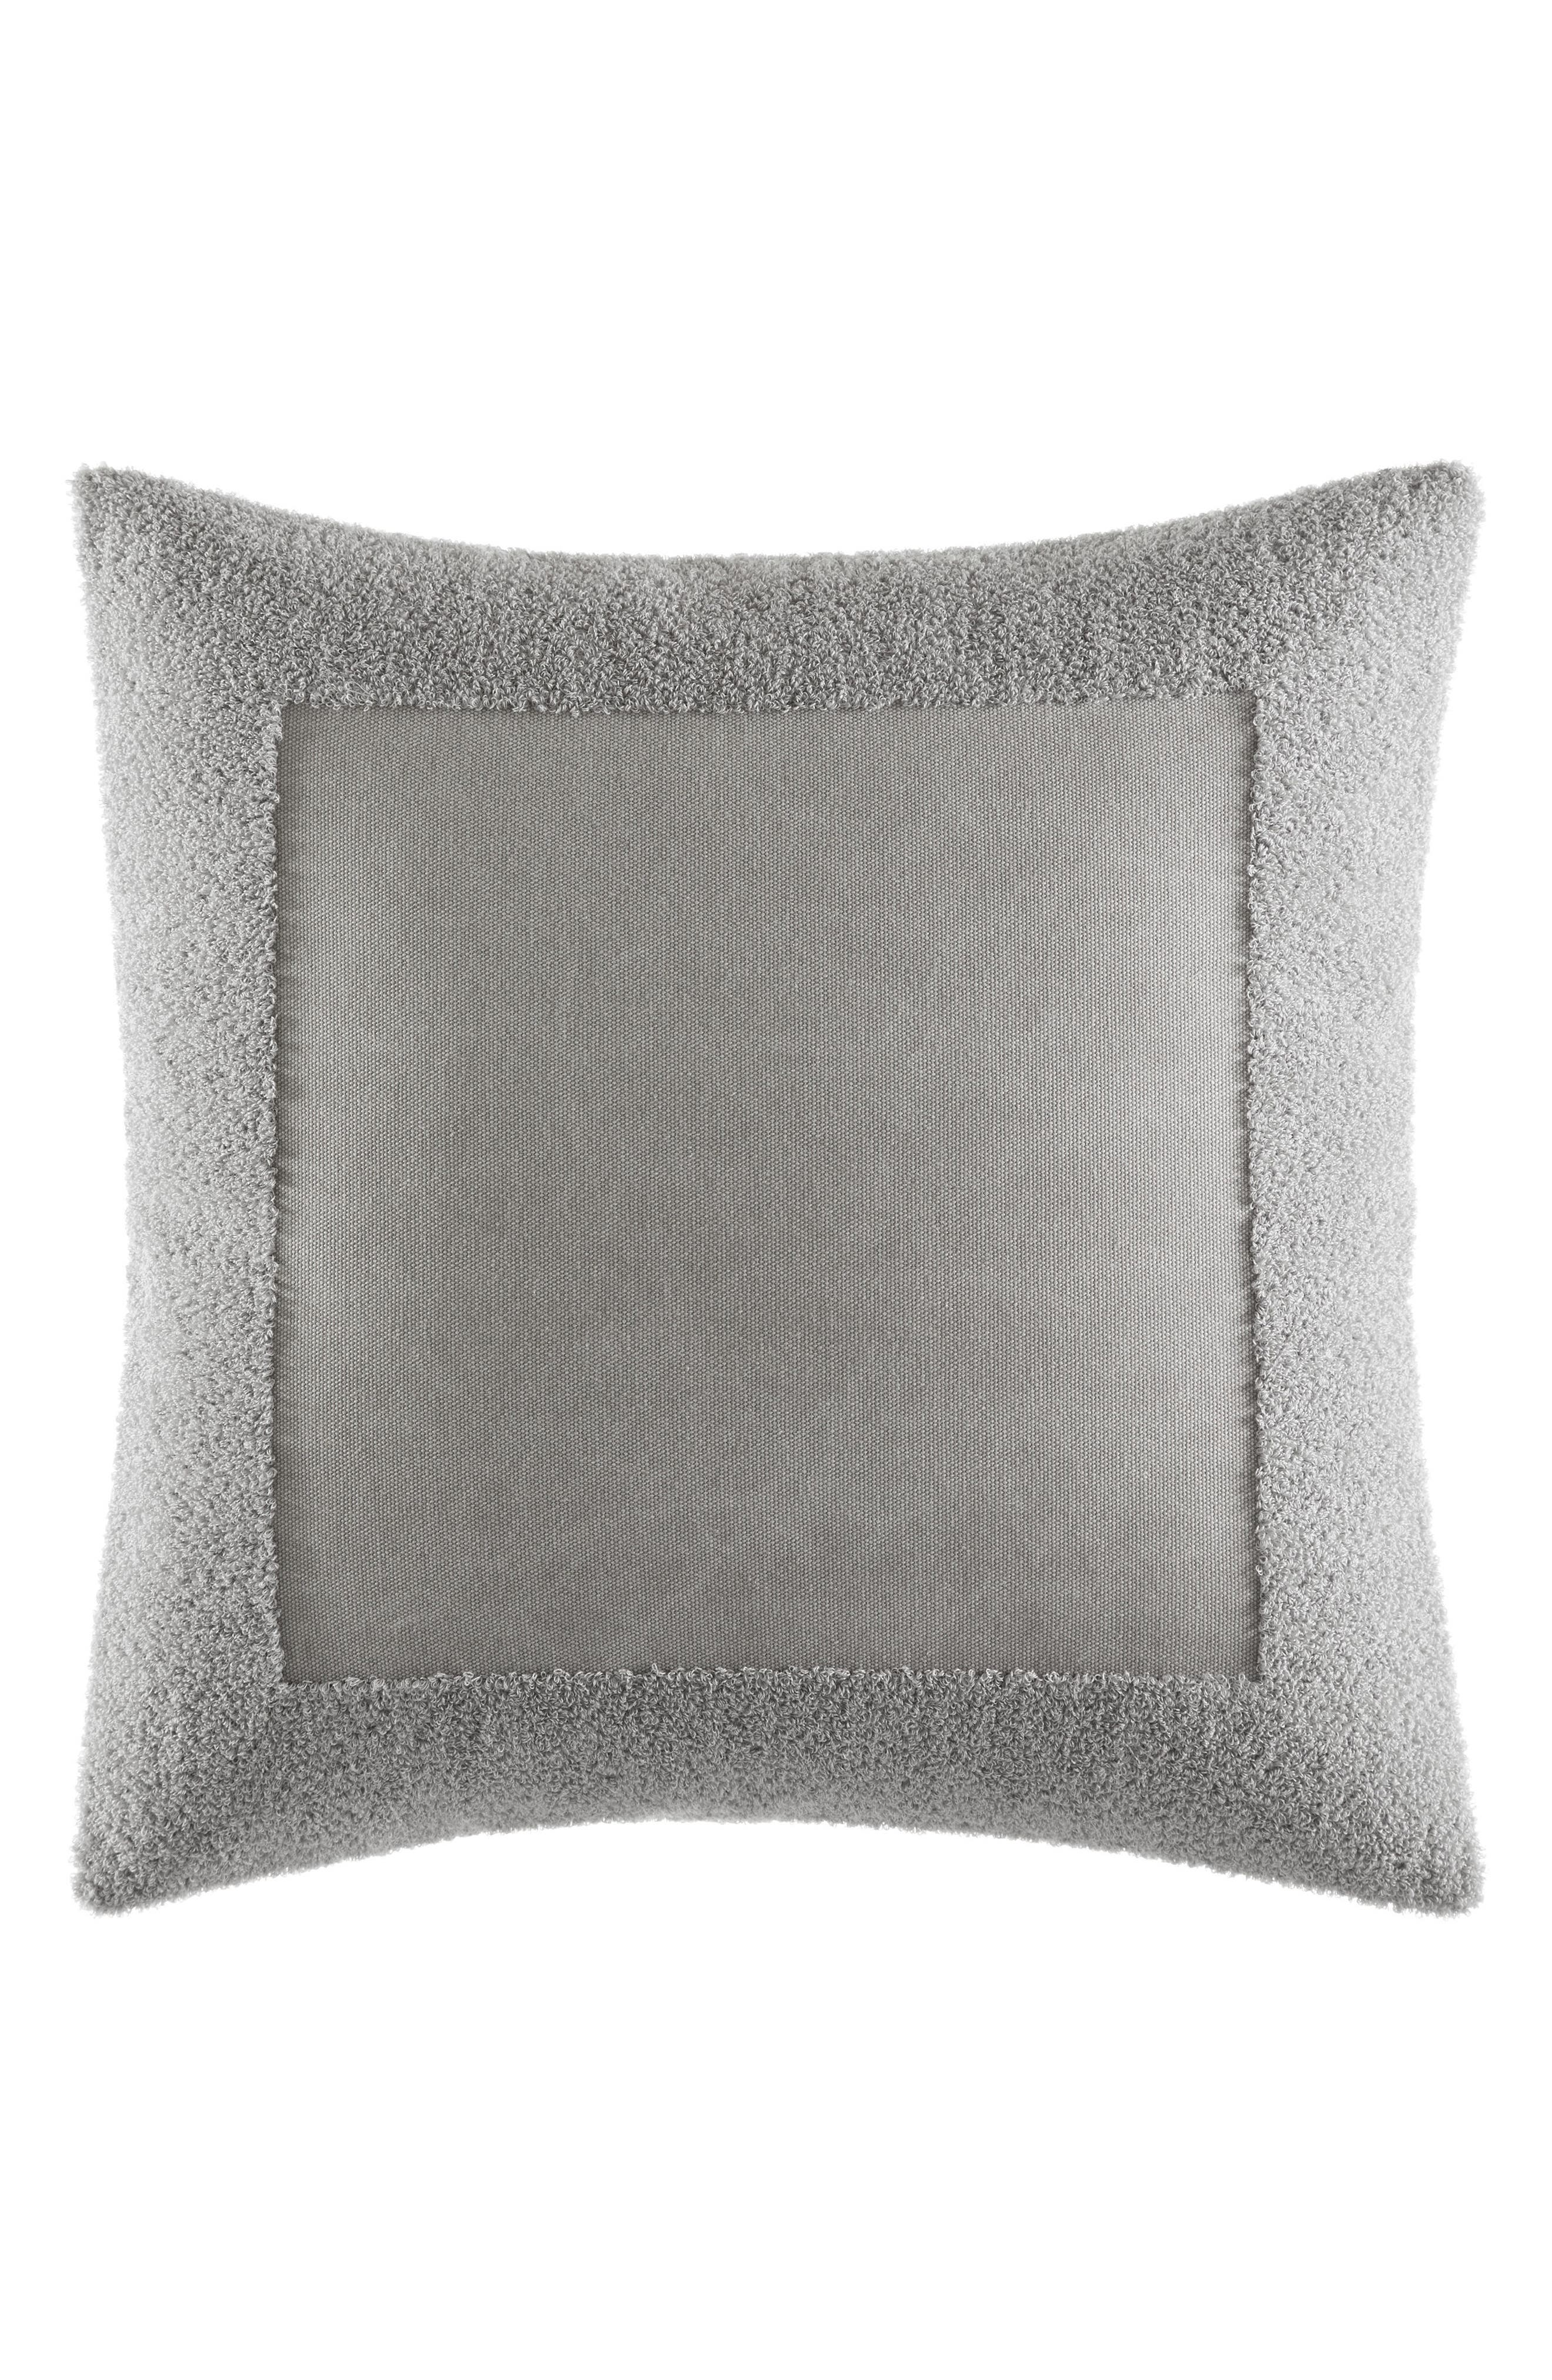 Transparent Leaves Accent Pillow,                             Main thumbnail 1, color,                             Medium Gray